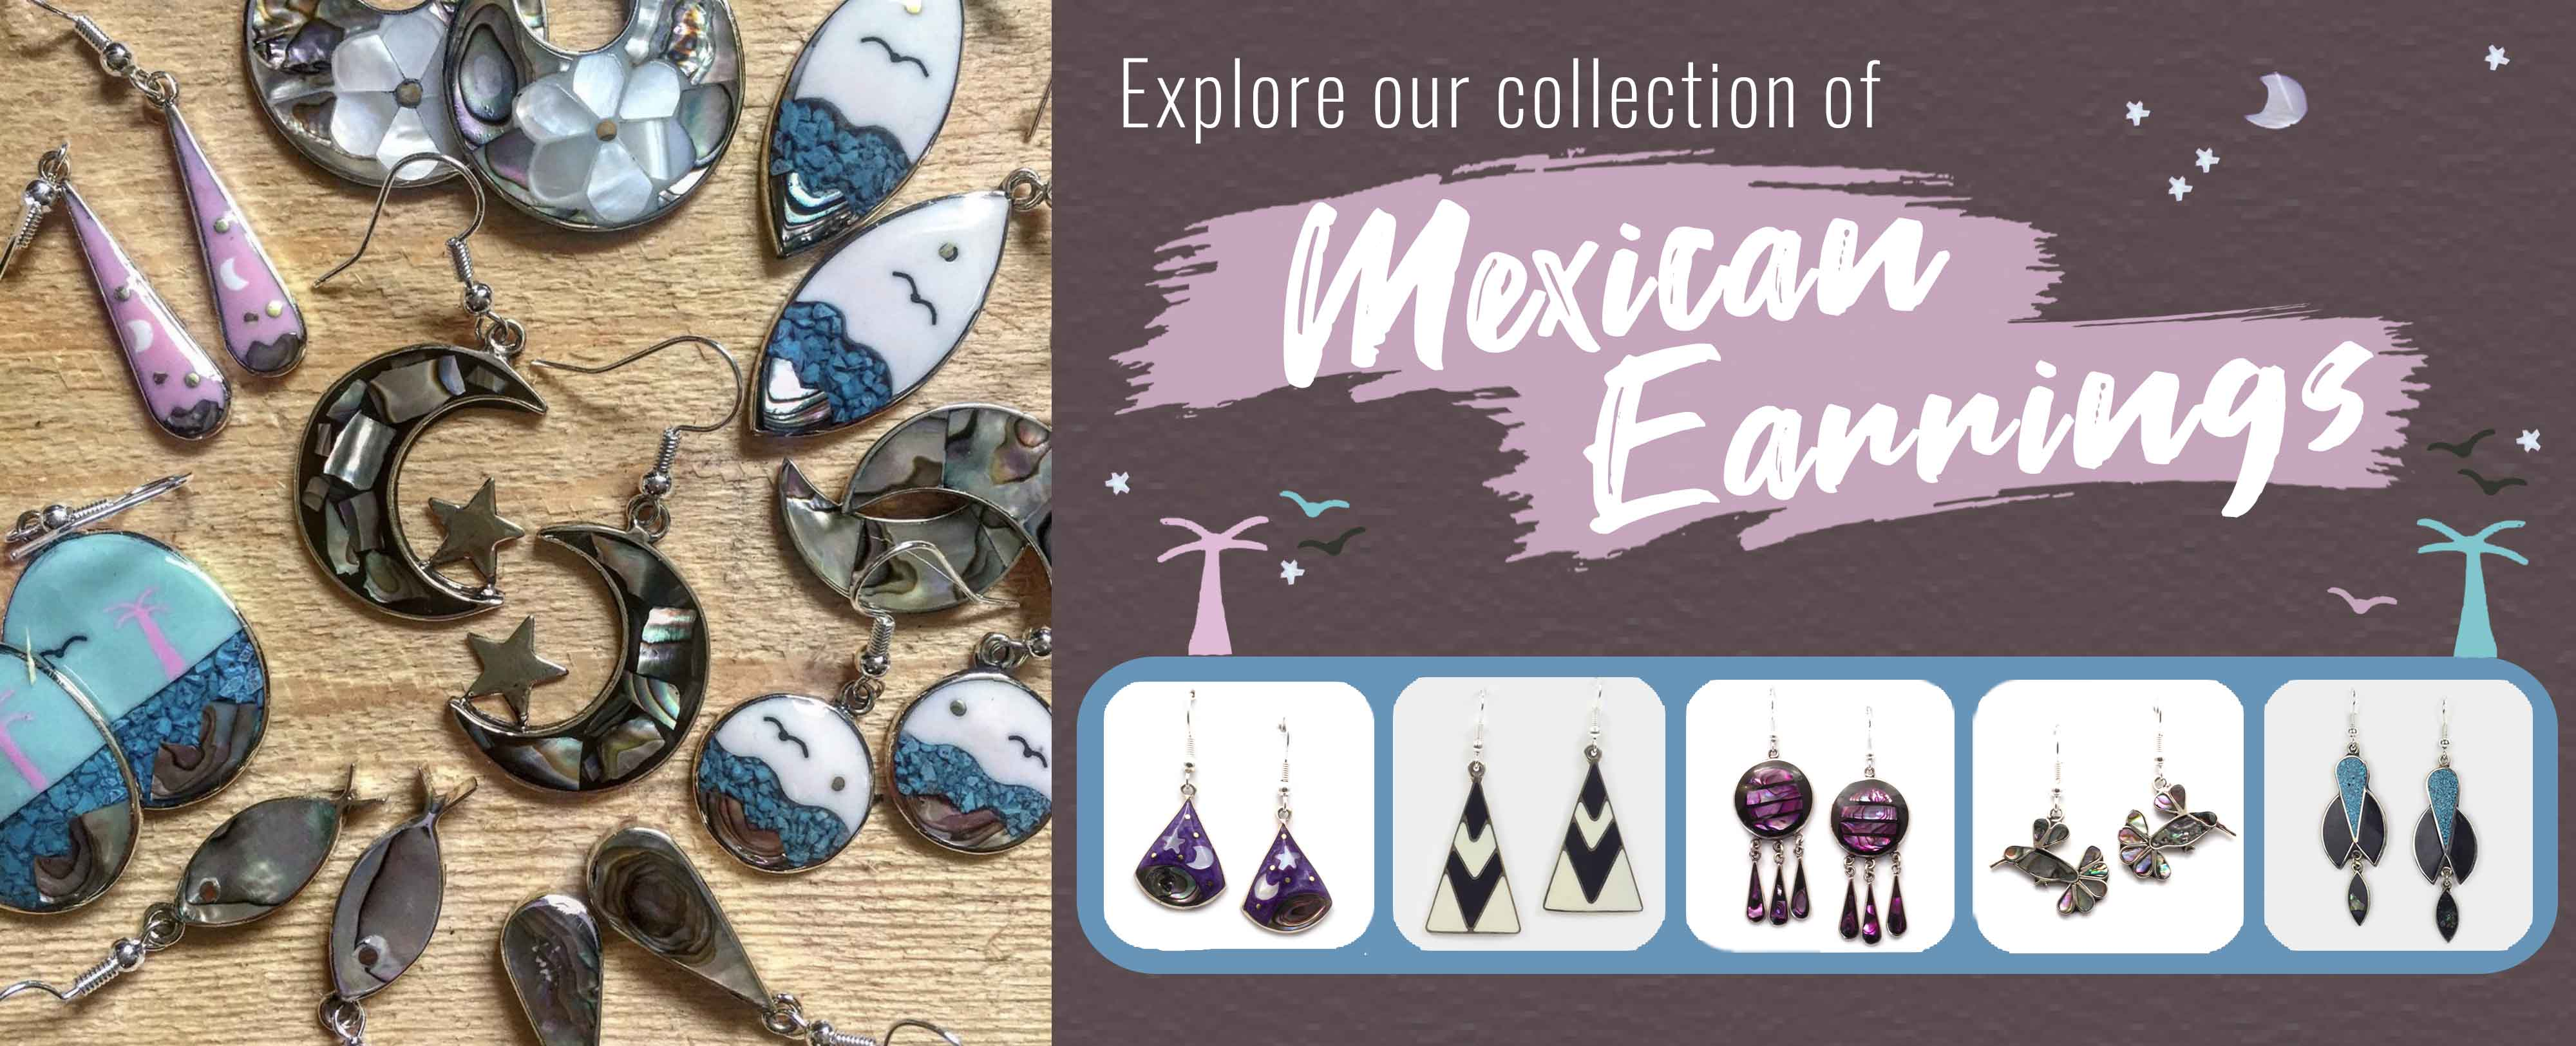 Explore our collection of Mexican earrings